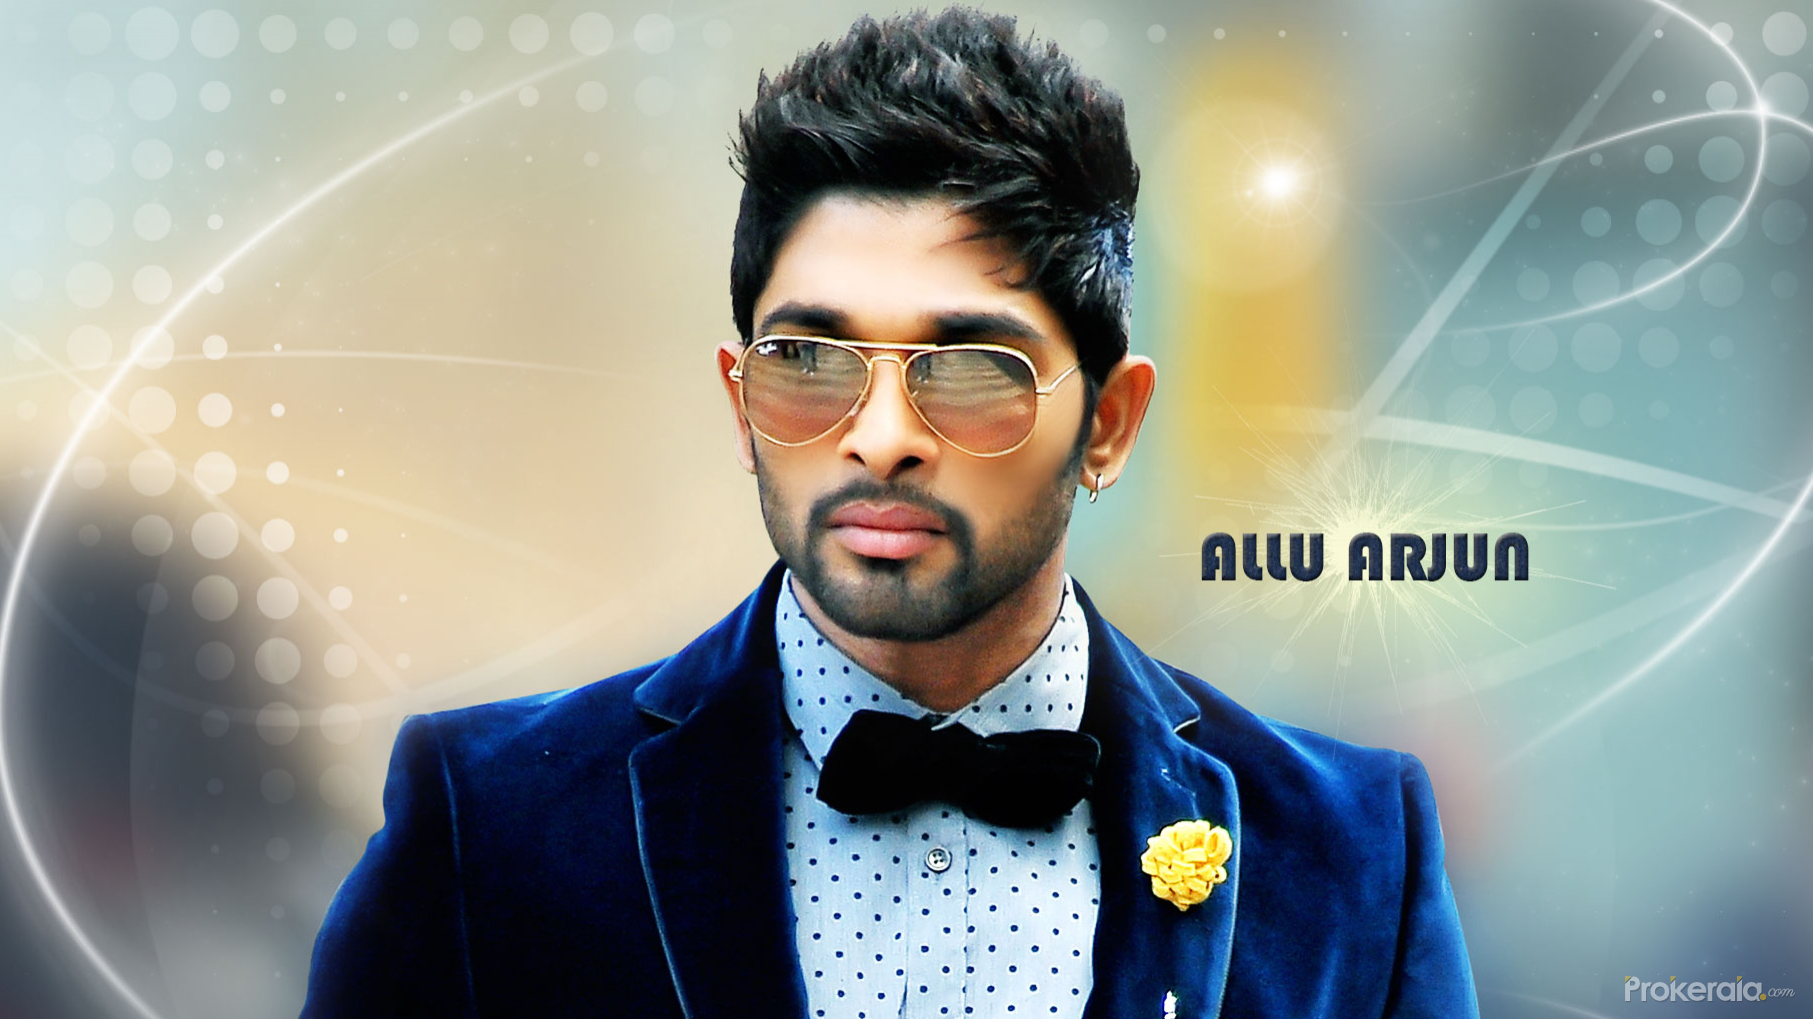 Allu Arjun Stylish Wallpapers For Download